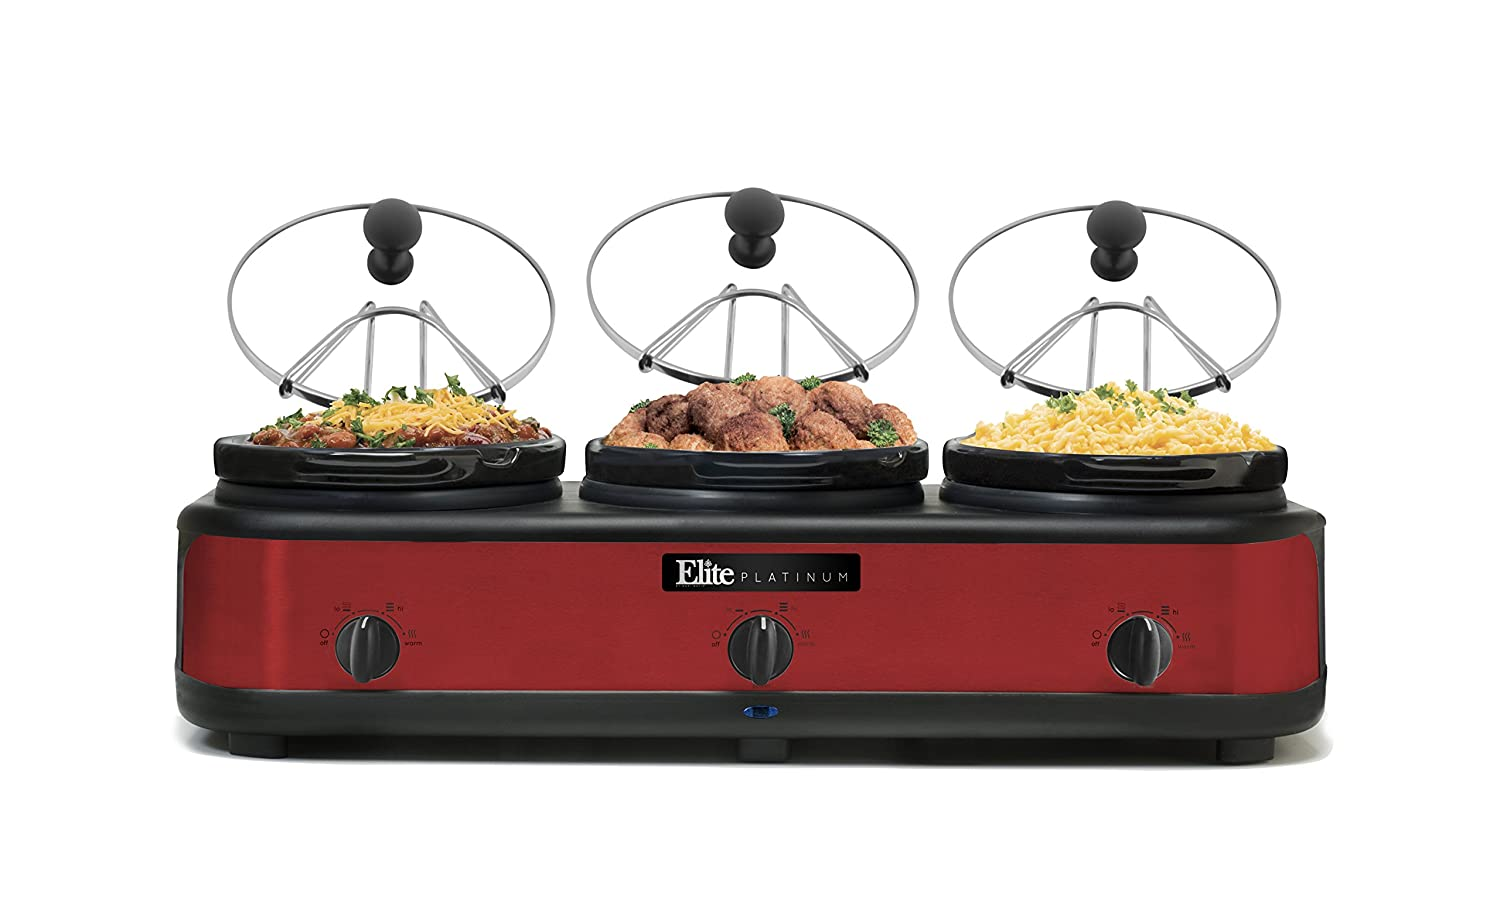 Elite Platinum EWMST-325R Triple Slow Cooker Buffet Server, Warmer, Adjustable Temp Dishwasher-Safe Oval Ceramic Pots, Lid Rests, 3 x 2.5Qt Capacity Red